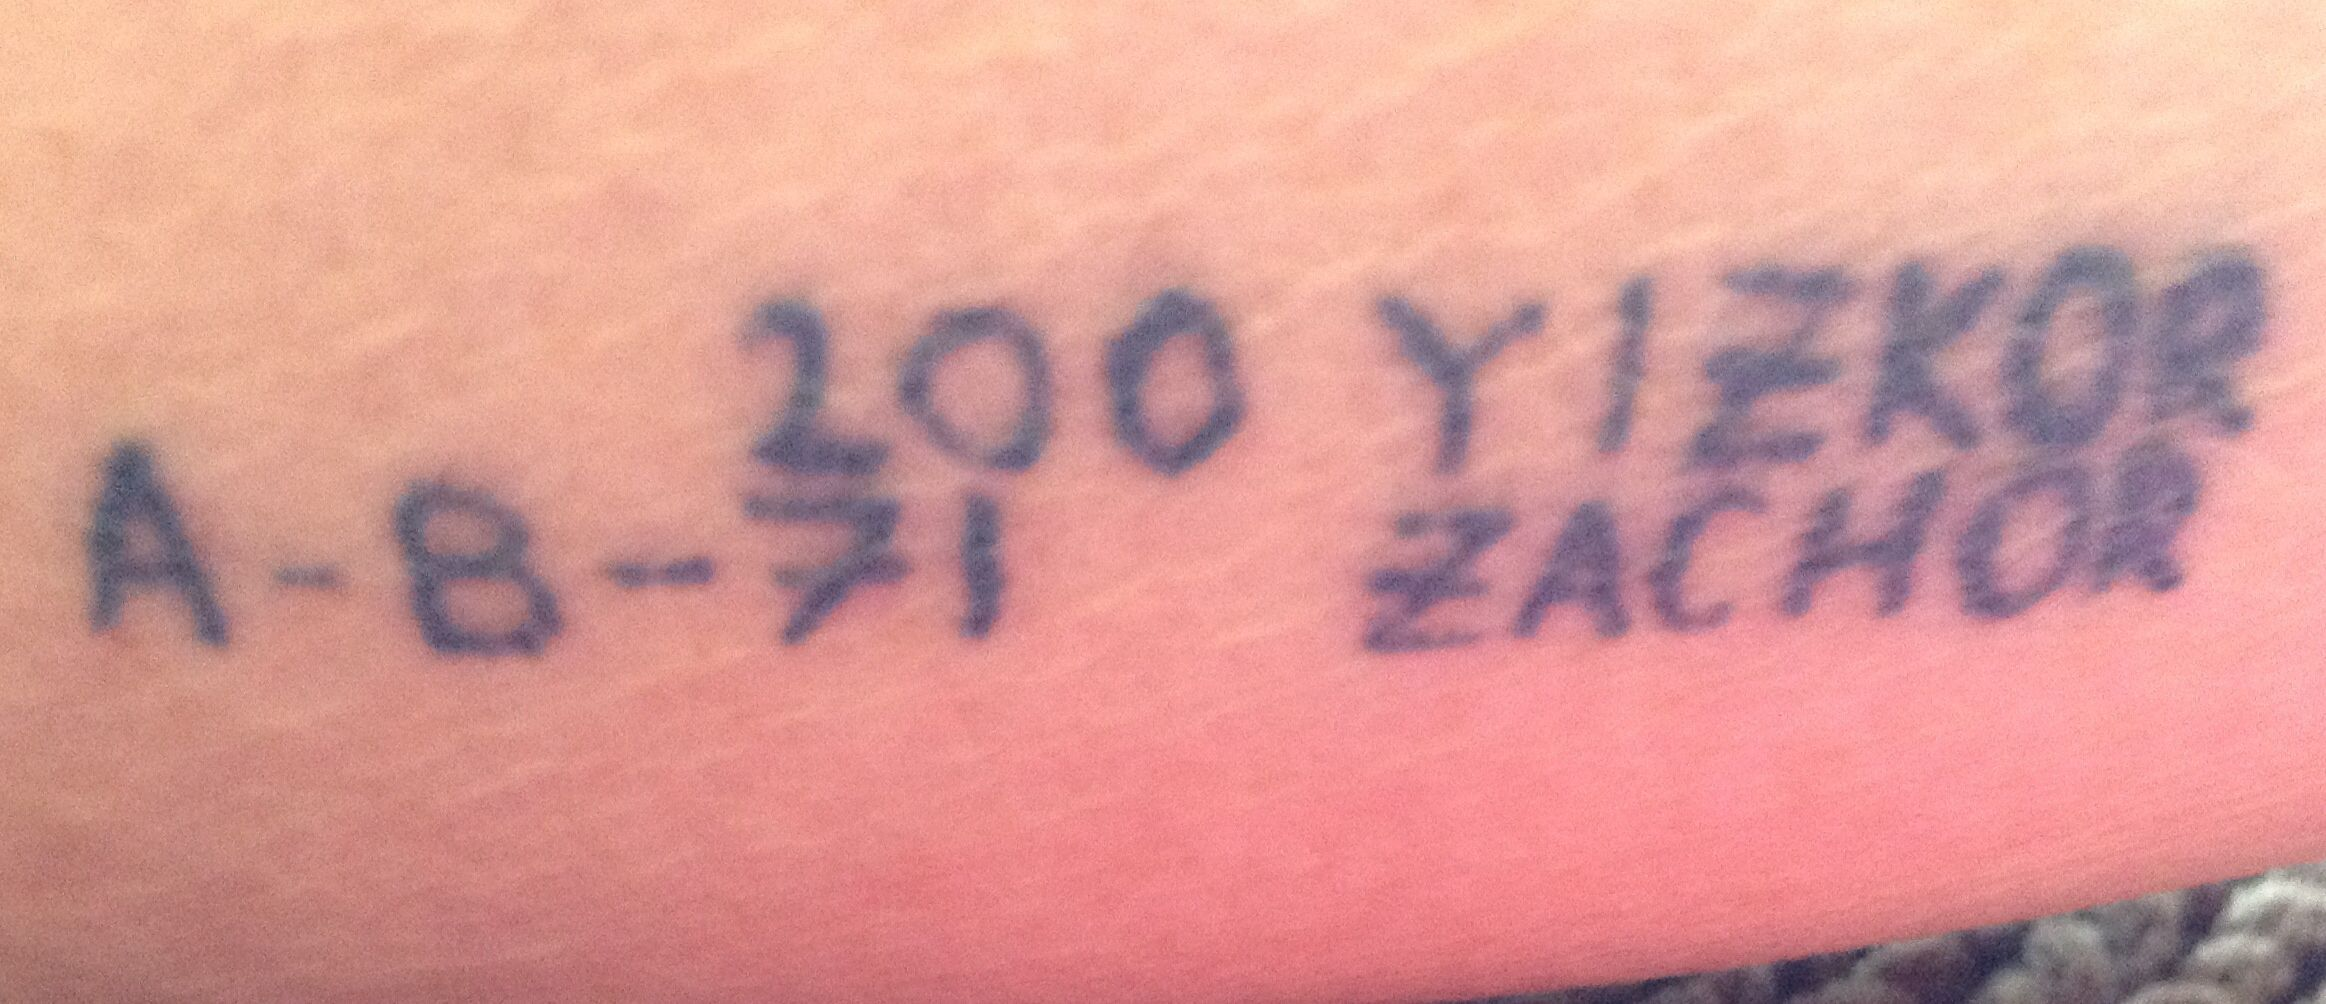 The Auschwitz numbers of my friend Anna Brunn Ornstein, in Auschwitz when she was 16. They are tattooed on my inner left forearm, with her permission & blessing, along with the Hebrew YIZKOR (Remember) & ZACHOR (Remind) because we must never allow the world to forget what the Nazis did to the European Jews, my family members among them.